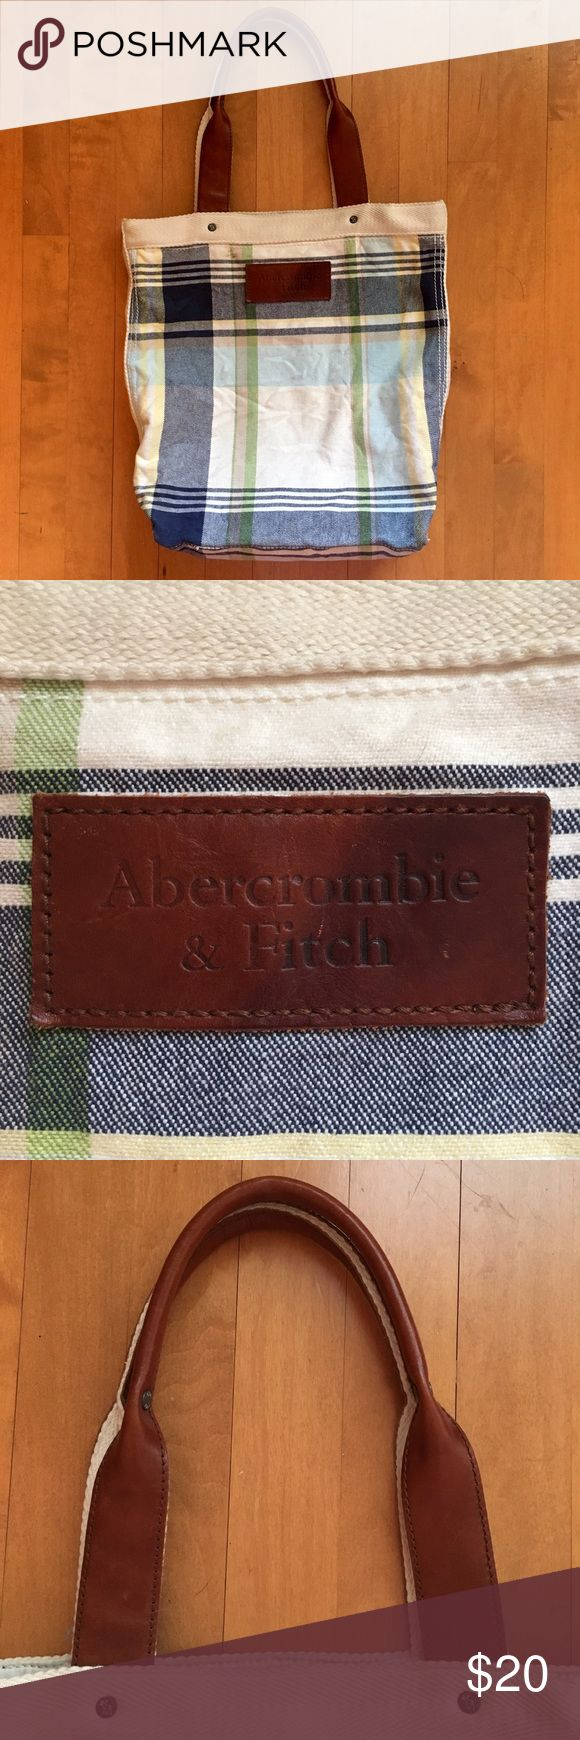 Abercrombie and Fitch Plaid Leather Tote Adorable plaid and leather tote by Abercrombie and Fitch in excellent used condition! It has a white cloth interior with a zipper pocket and a pouch.There are some light orange stains on the inside, mostly near the zipper pouch where an orange Gatorade spilled but not noticeable from the outside. Everything else is in great condition. Size: 14 x 14 inches. Abercrombie & Fitch Bags Totes